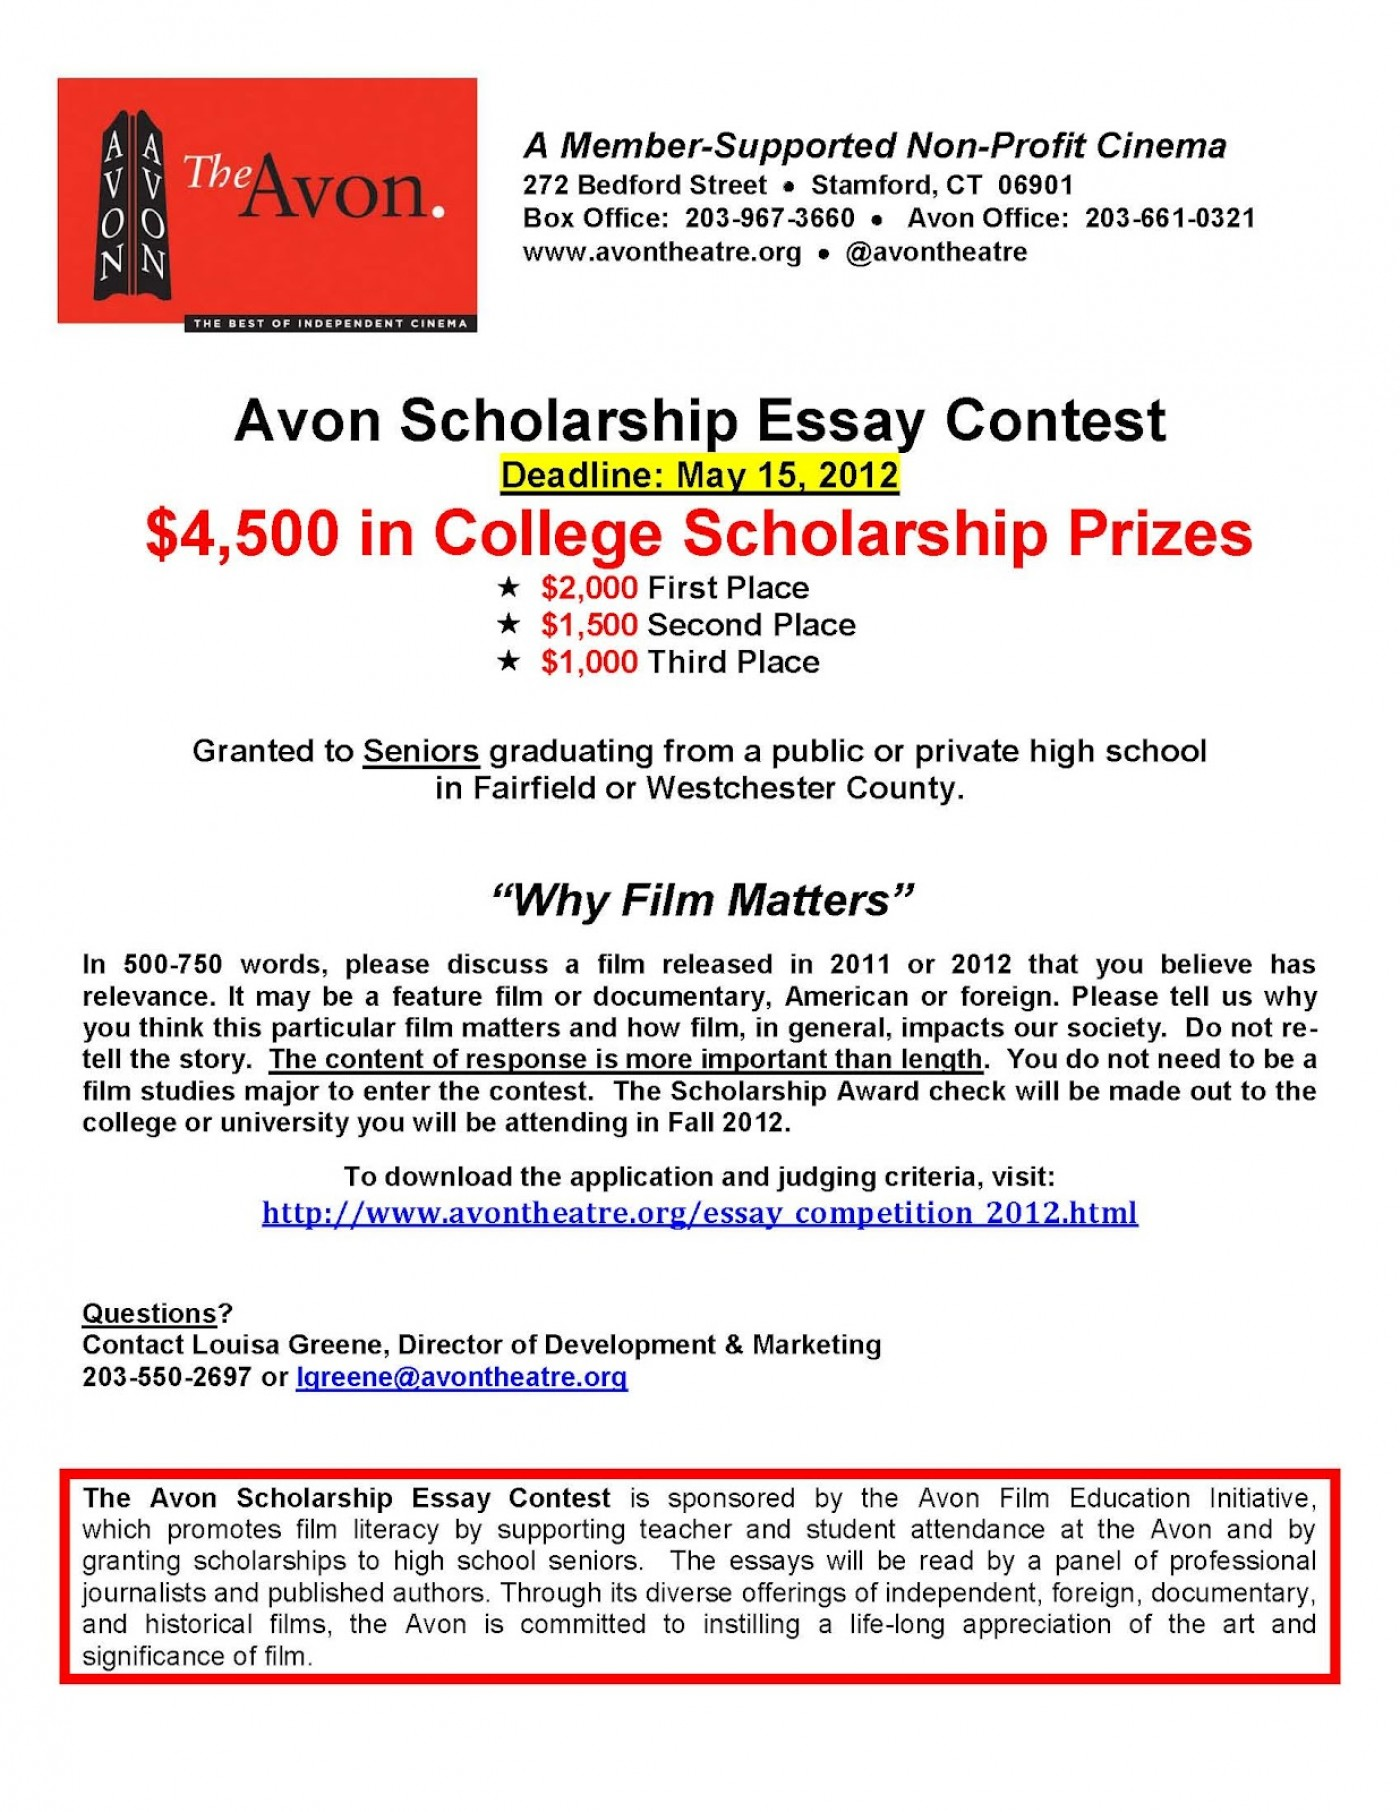 016 Avonscholarshipessaycontest2012flyer Essay Example Shocking Scholarships For High School Students 2018 2019 1400